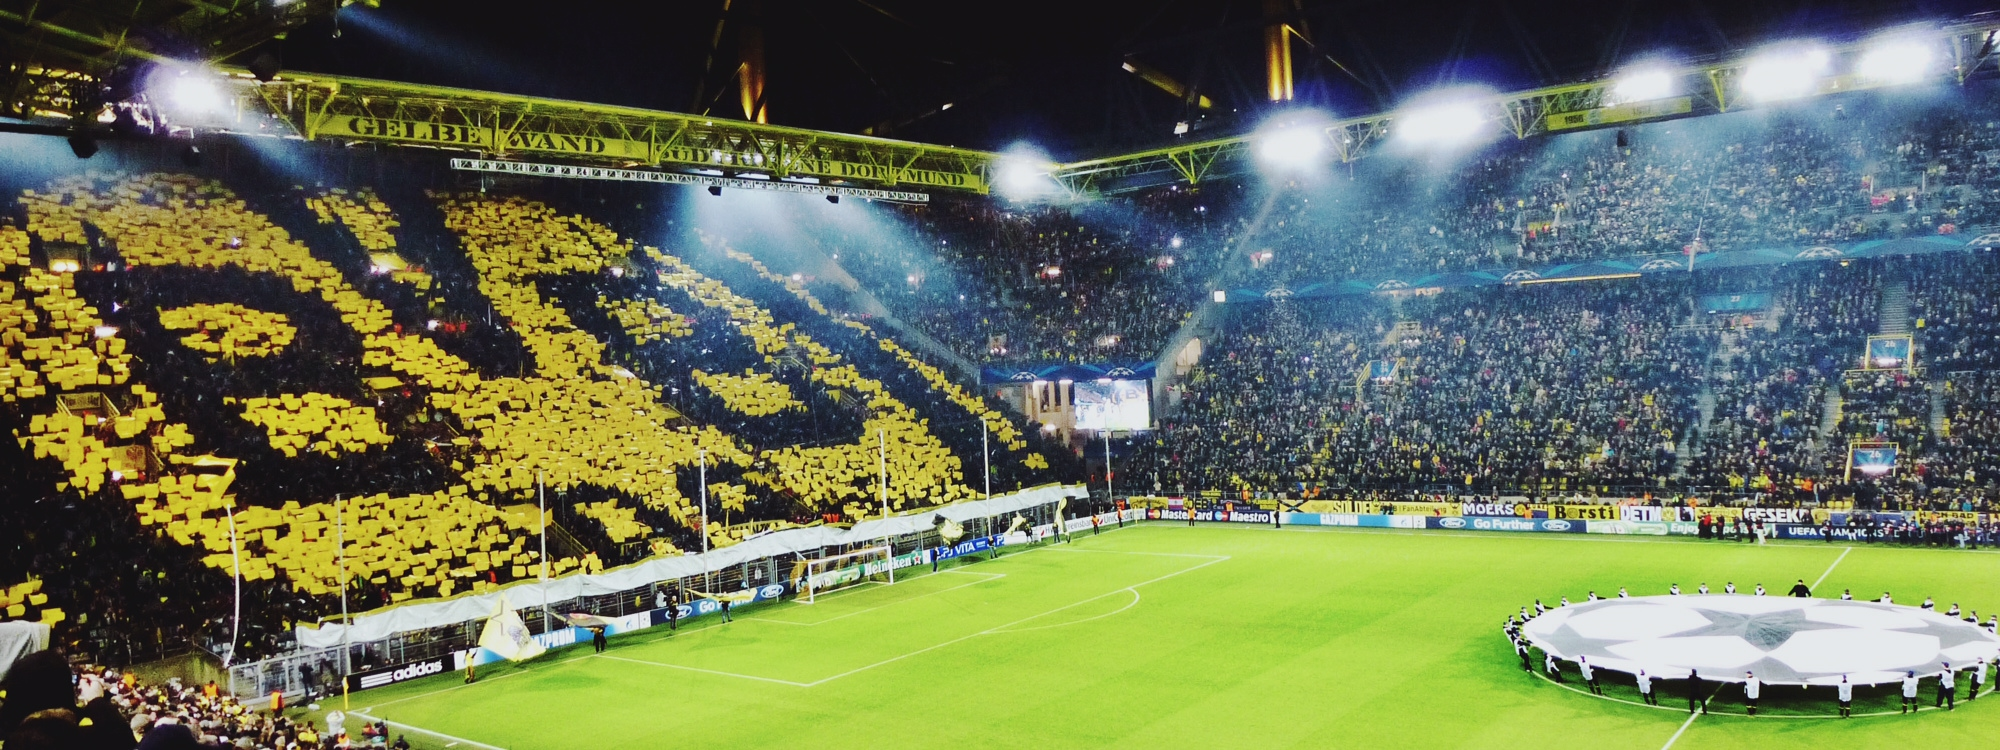 Download Signal Iduna Park Wallpaper Hd Gallery